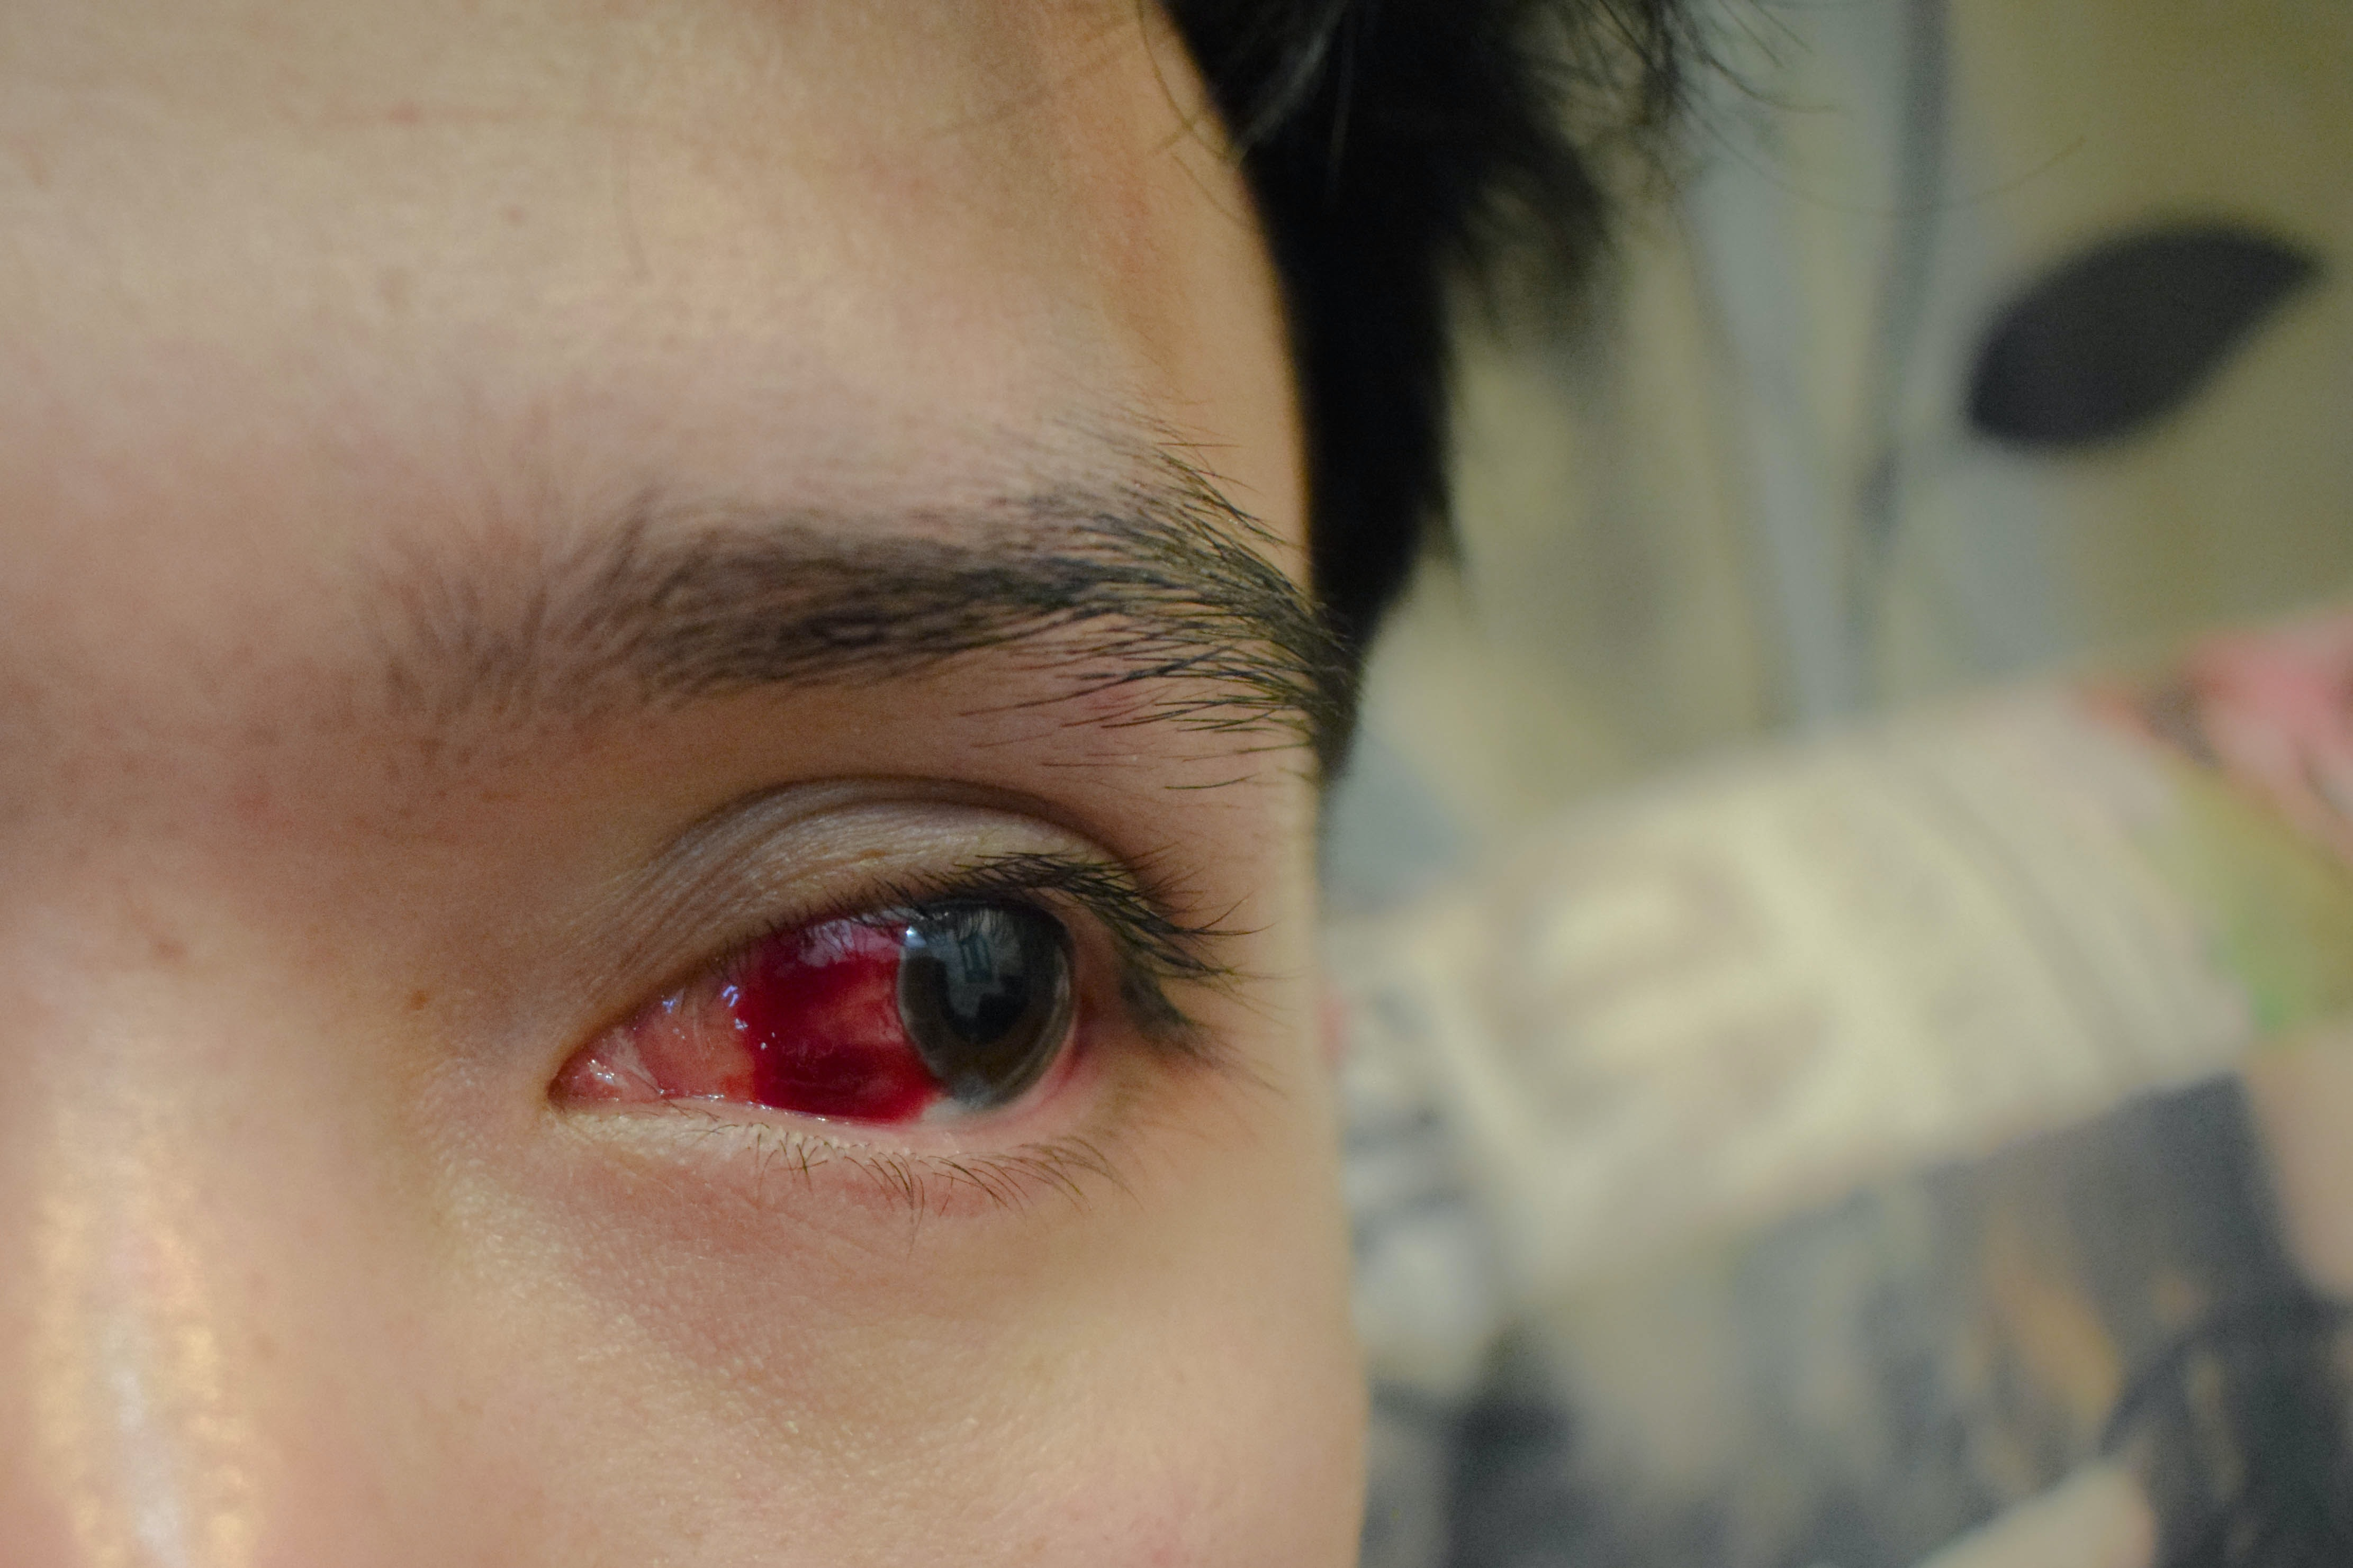 The vessel in the eye burst: treatment and the causes